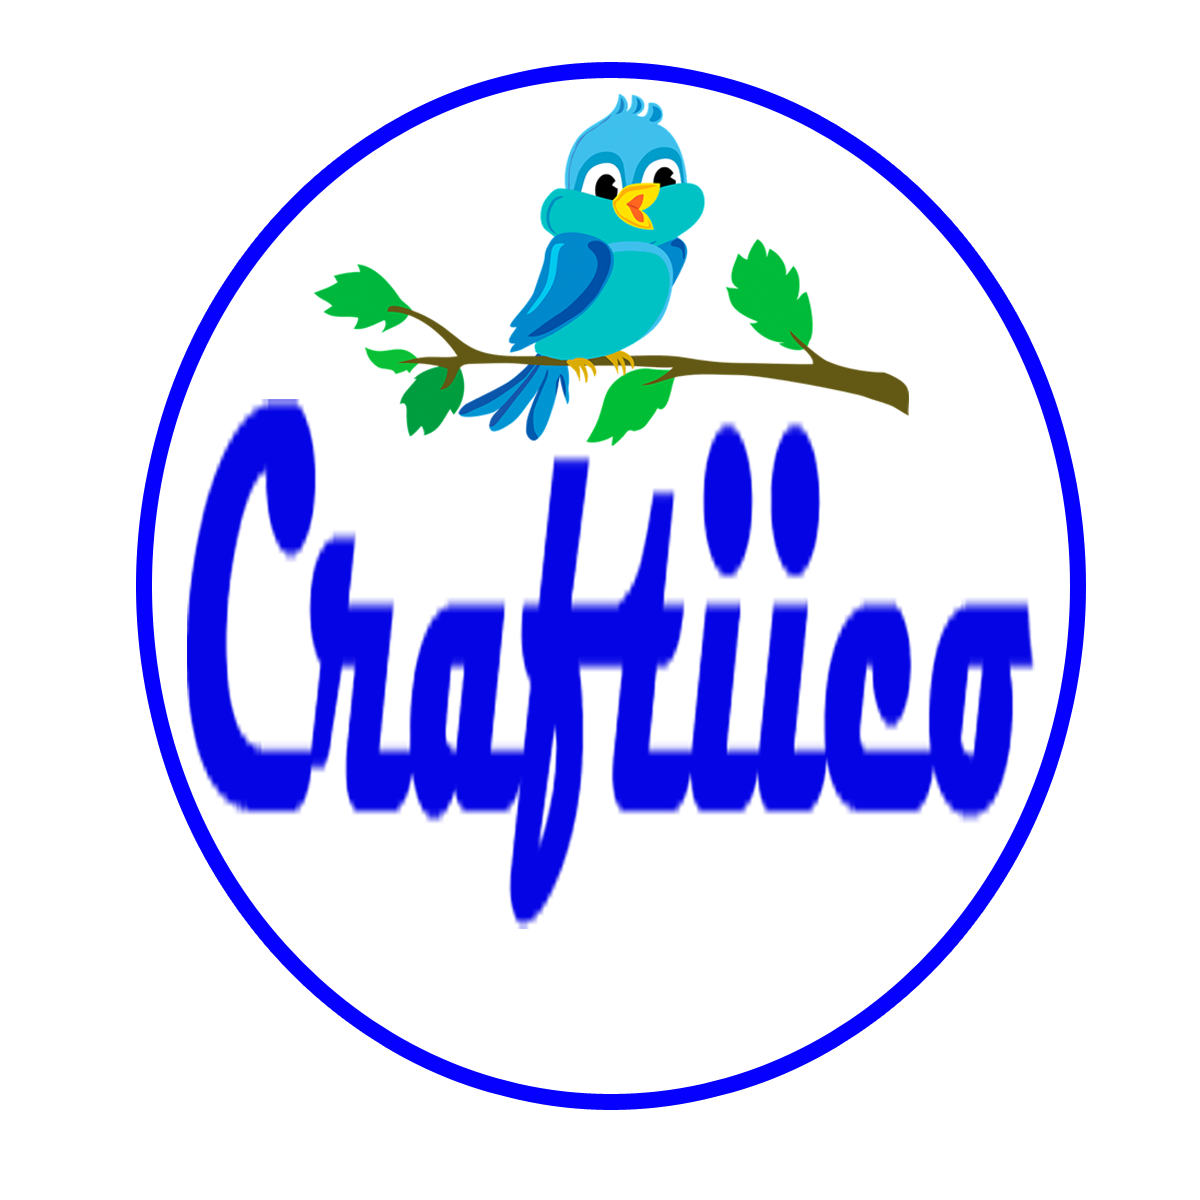 Craftiico Apparel and Clothing